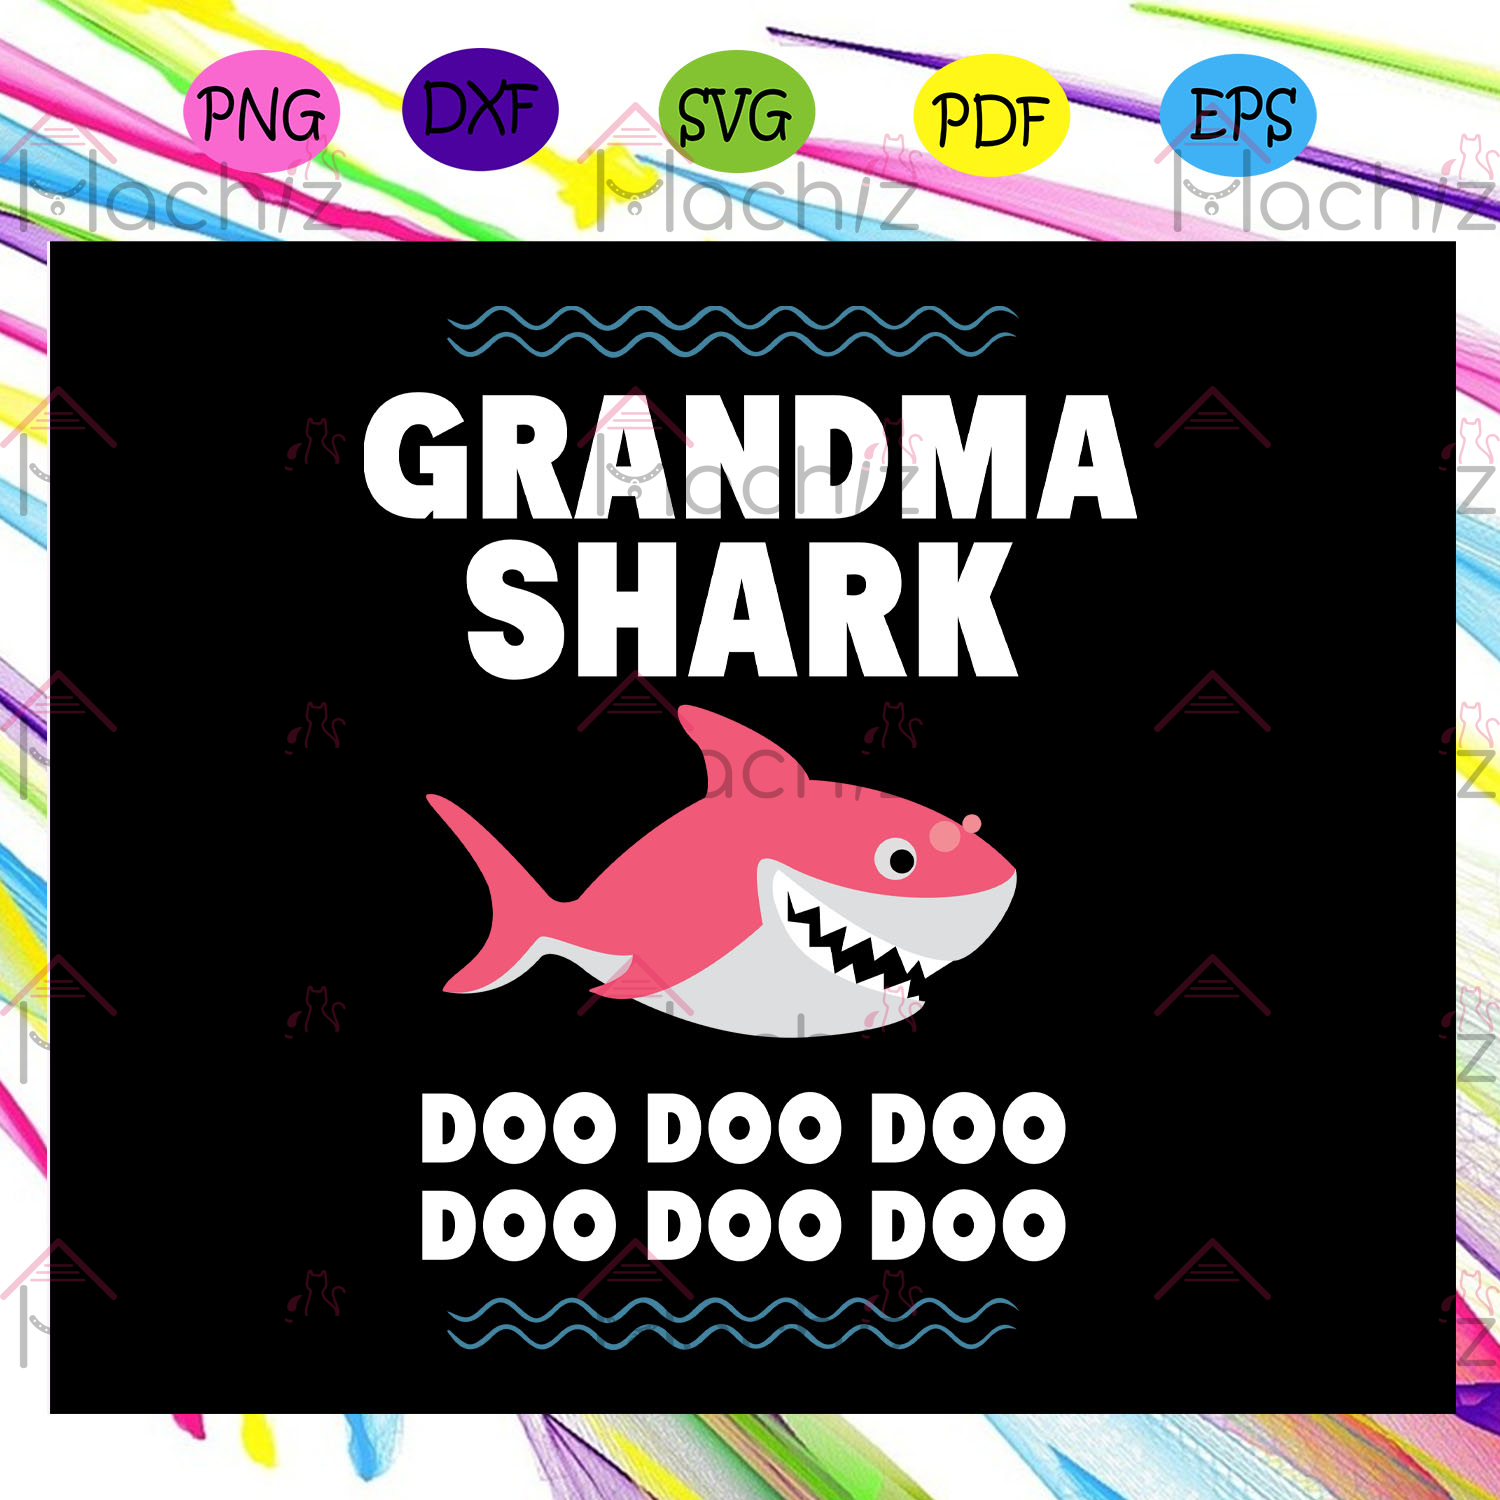 Grandma shark doo grandma , Mothers Day Gift,Trendy Mom,trending svg, Files For Silhouette, Files For Cricut, SVG, DXF, EPS, PNG, Instant Download